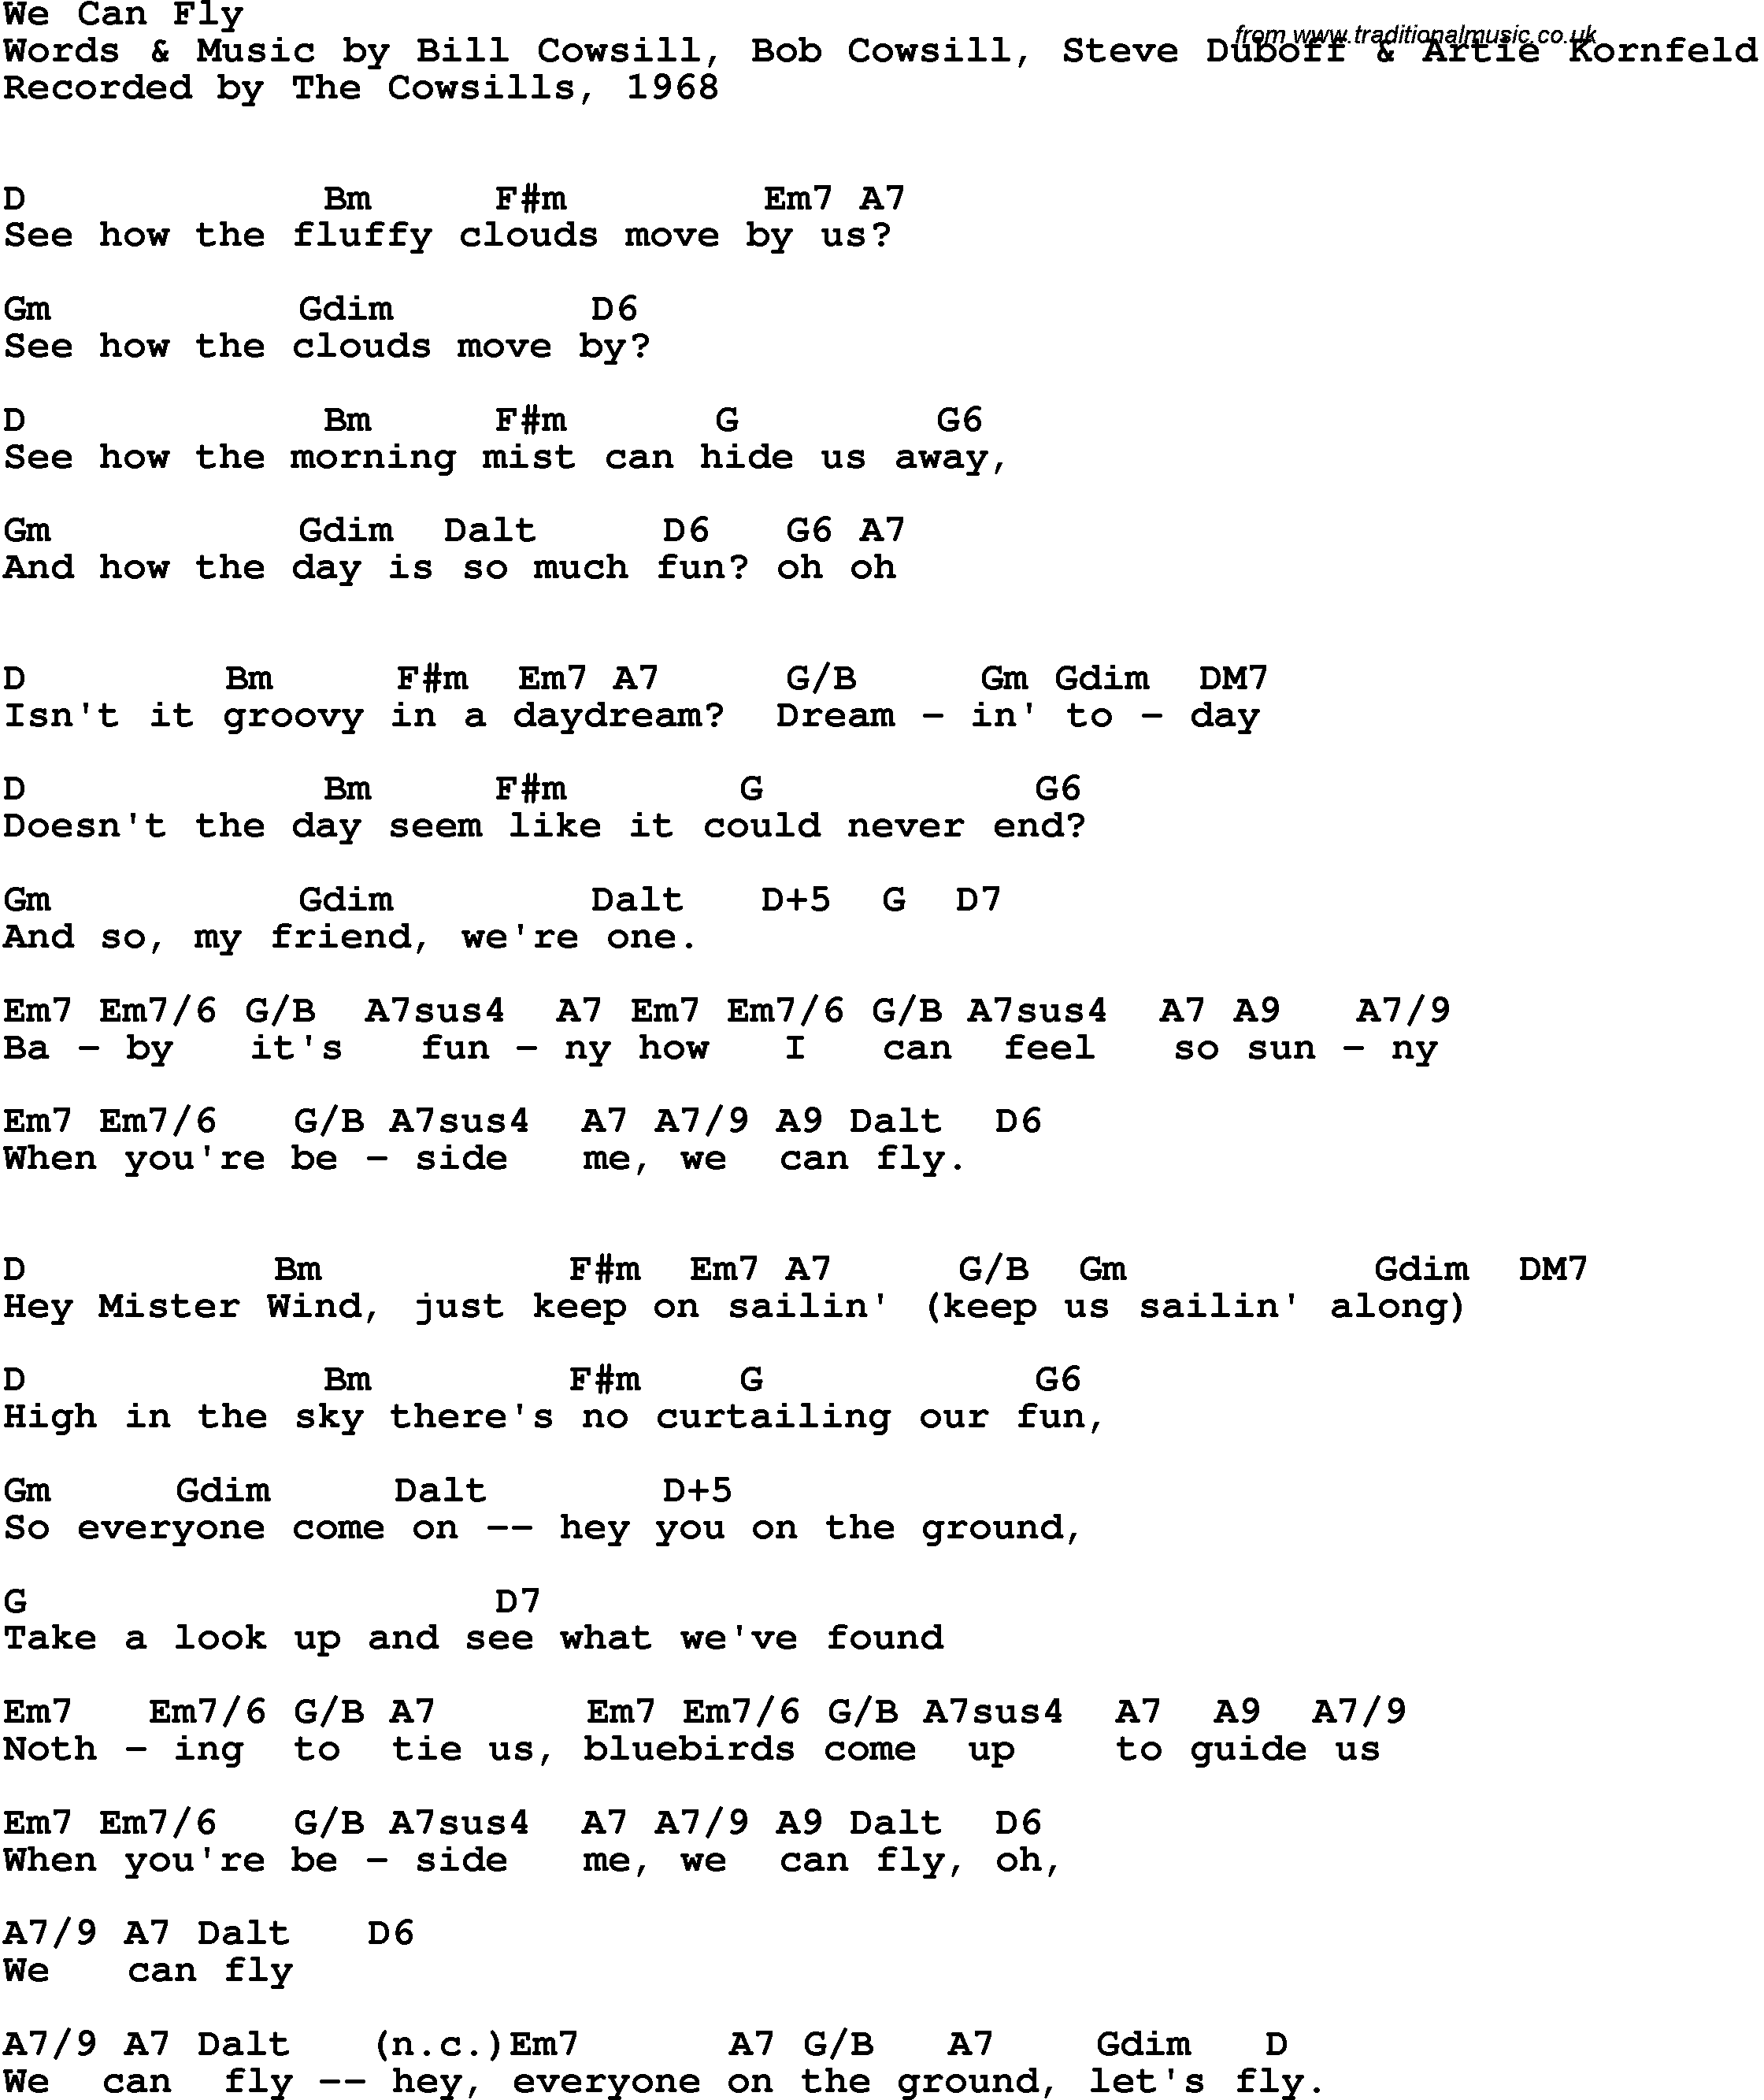 Song lyrics with guitar chords for we can fly the cowsills 1968 song lyrics with guitar chords for we can fly the cowsills 1968 hexwebz Image collections